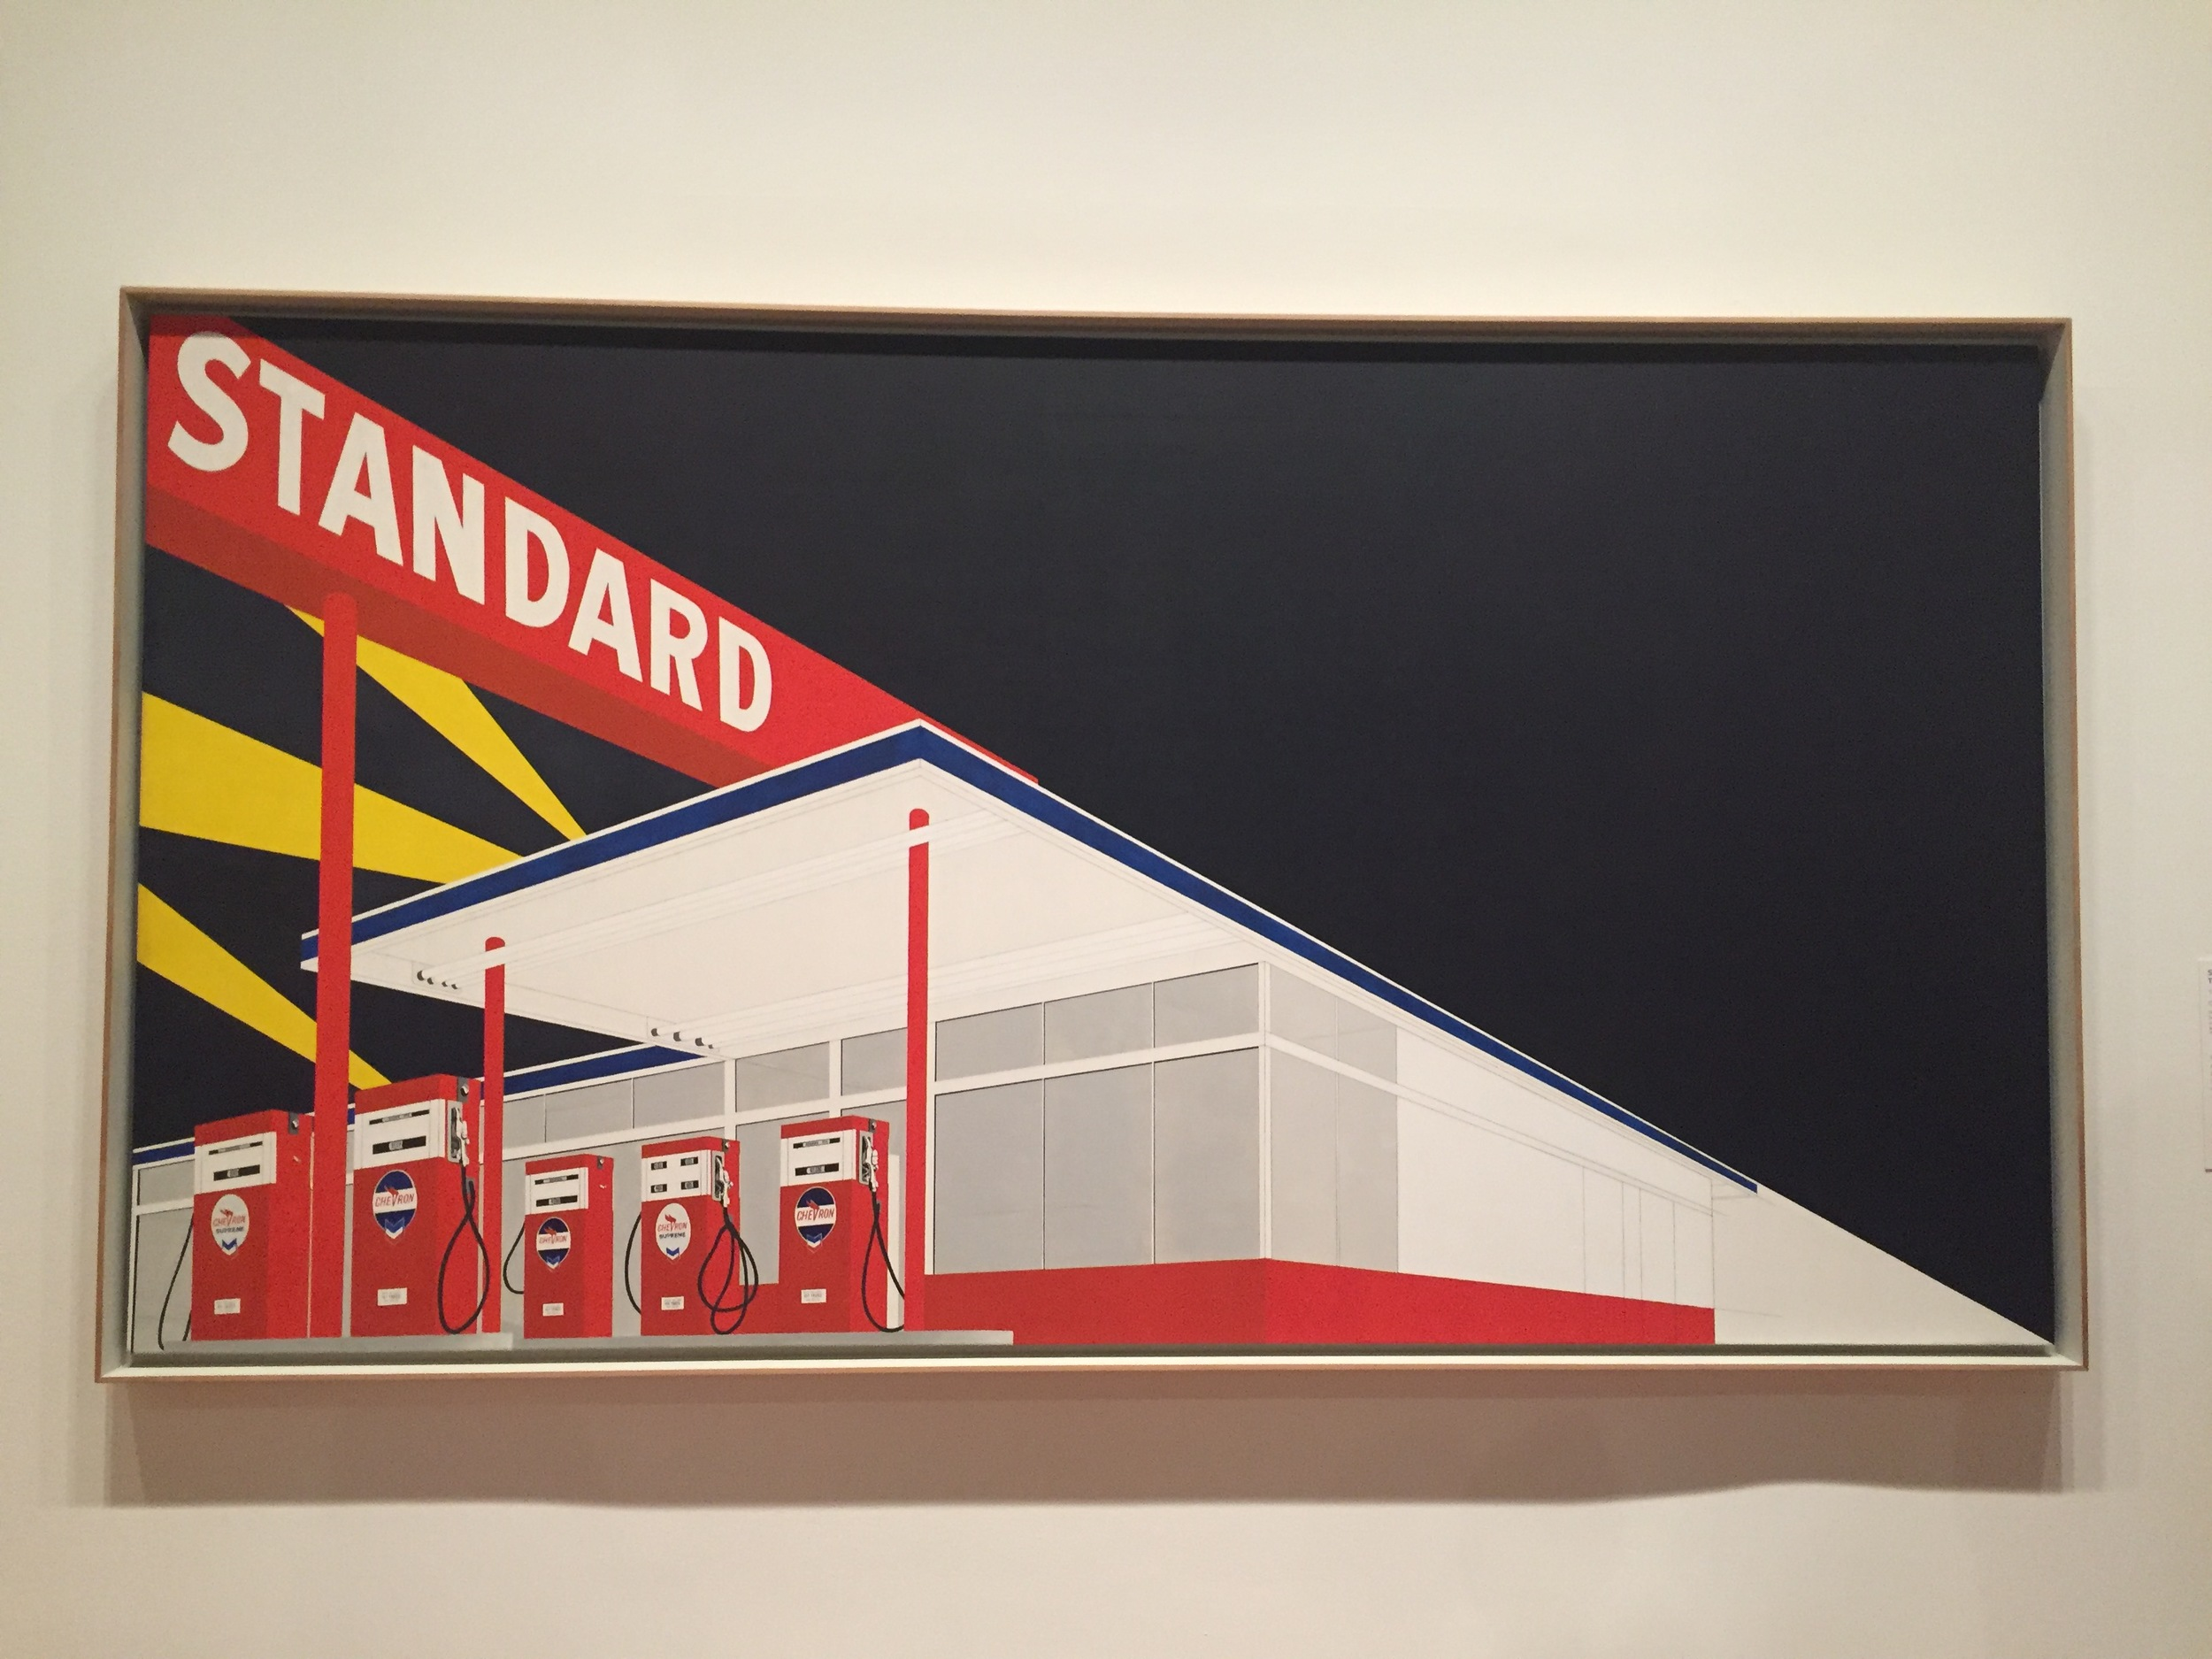 STATION 2003 - Ruscha created a number of sequels to his 1960s series of Standard station images roughly fifty years later.